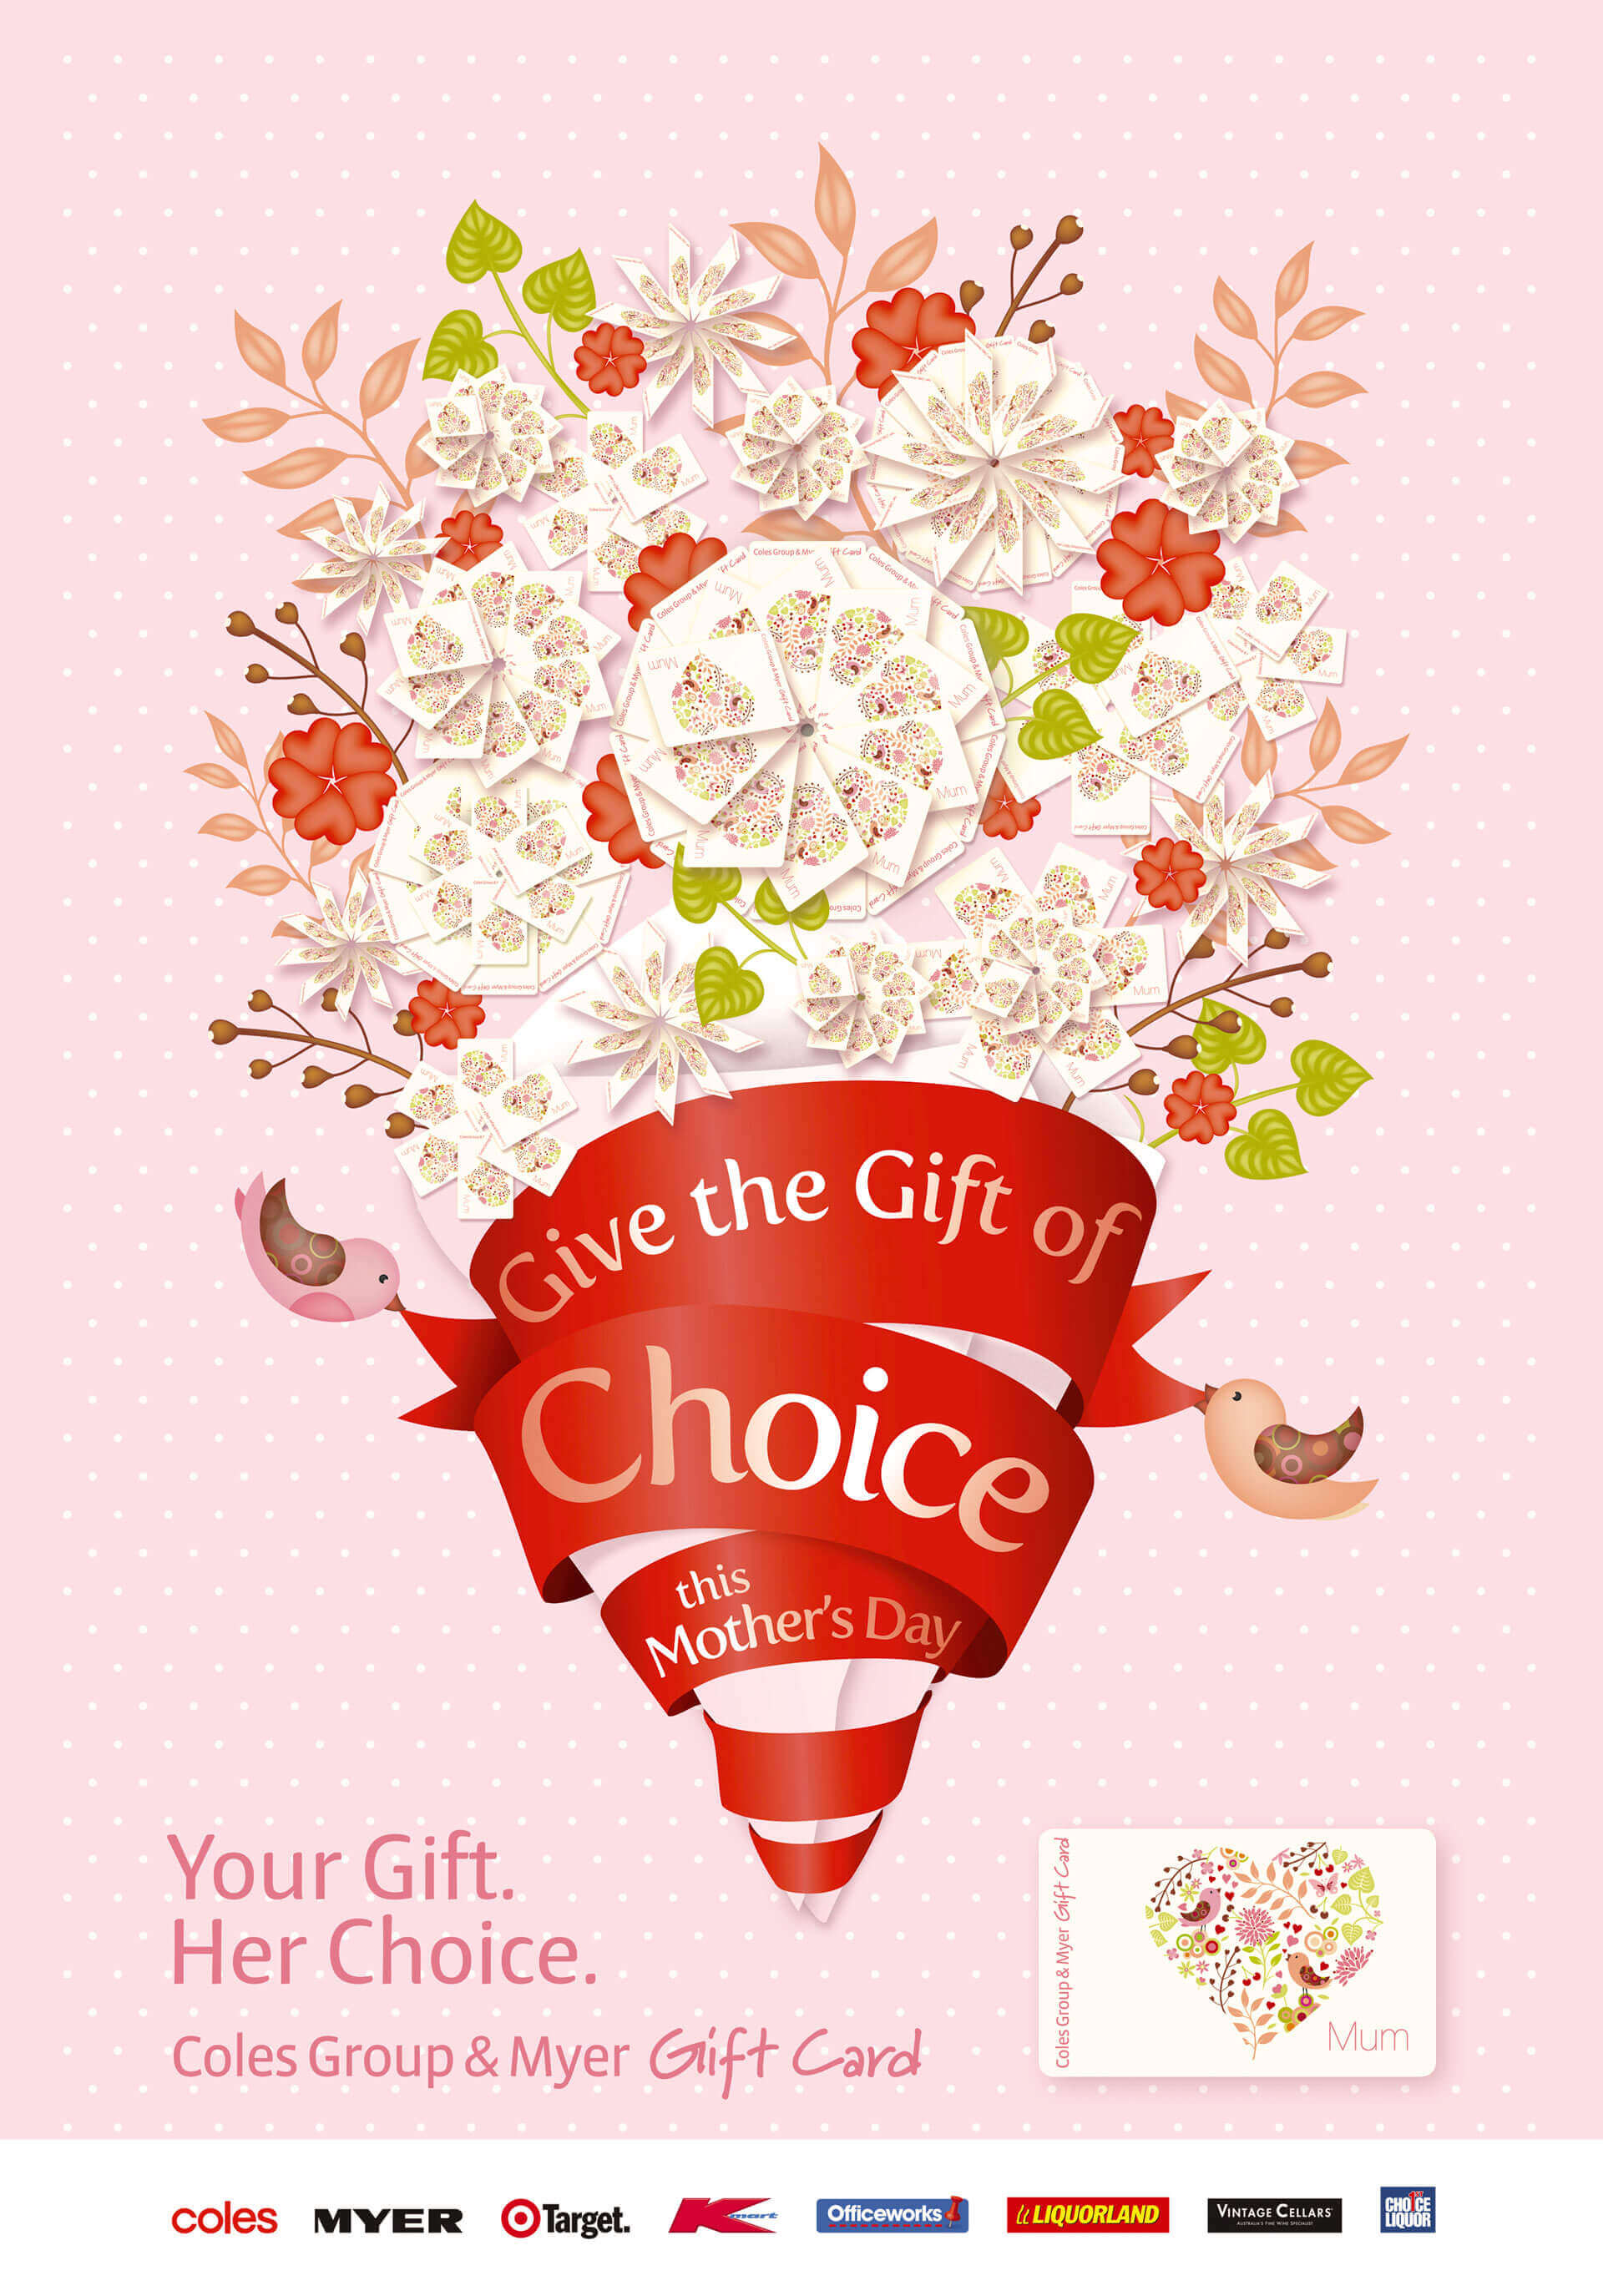 'Give the Gift of Choice' Coles Mothers Day Gift Card print ad artwork.